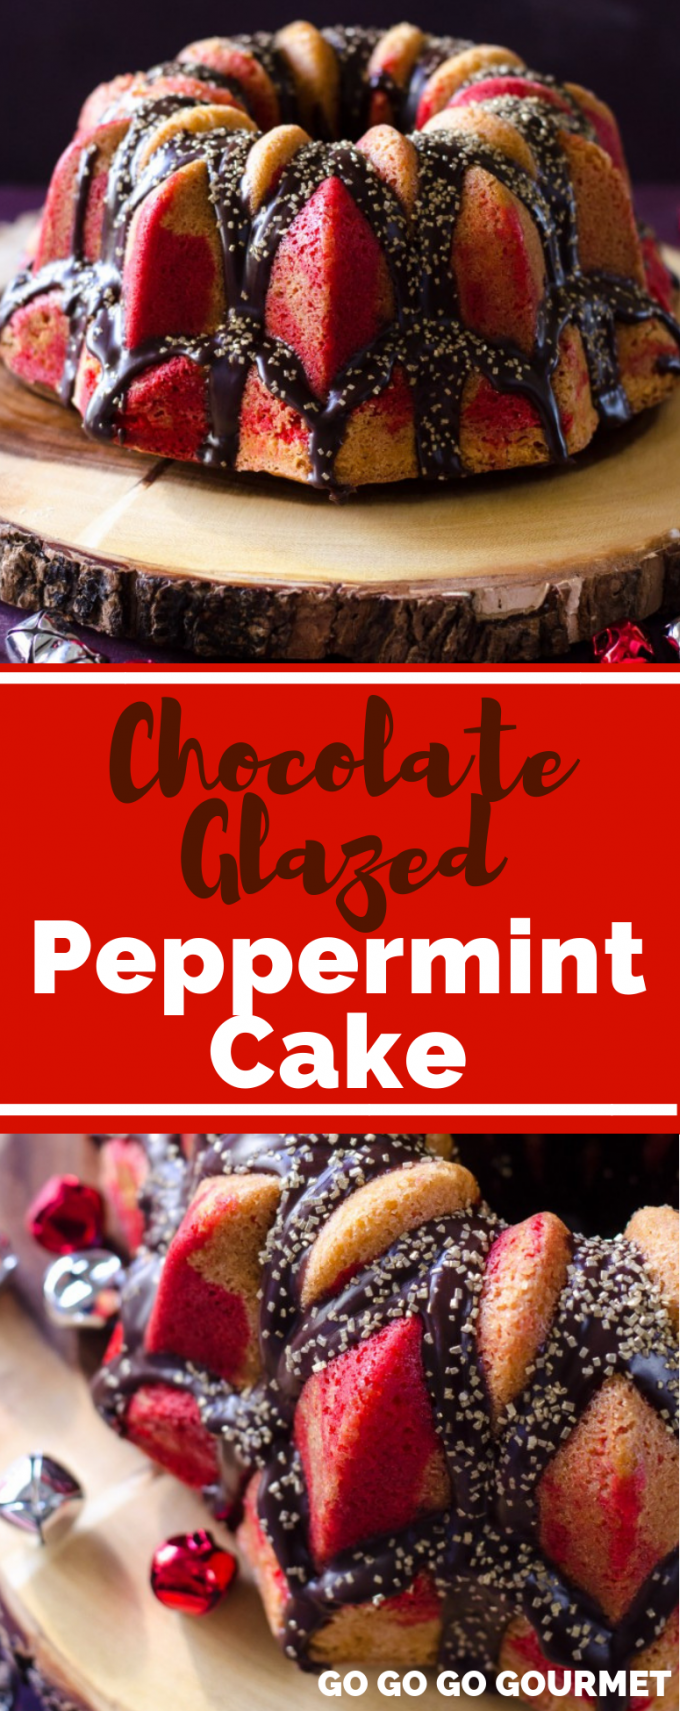 This easy Chocolate Glazed Peppermint Cake recipe is the perfect cake for the holiday! Your Christmas desserts won't be complete without this red and white showstopper! #gogogogourmet #chocolateglazedpeppermintcake #peppermintchristmascake #easychristmasdesserts